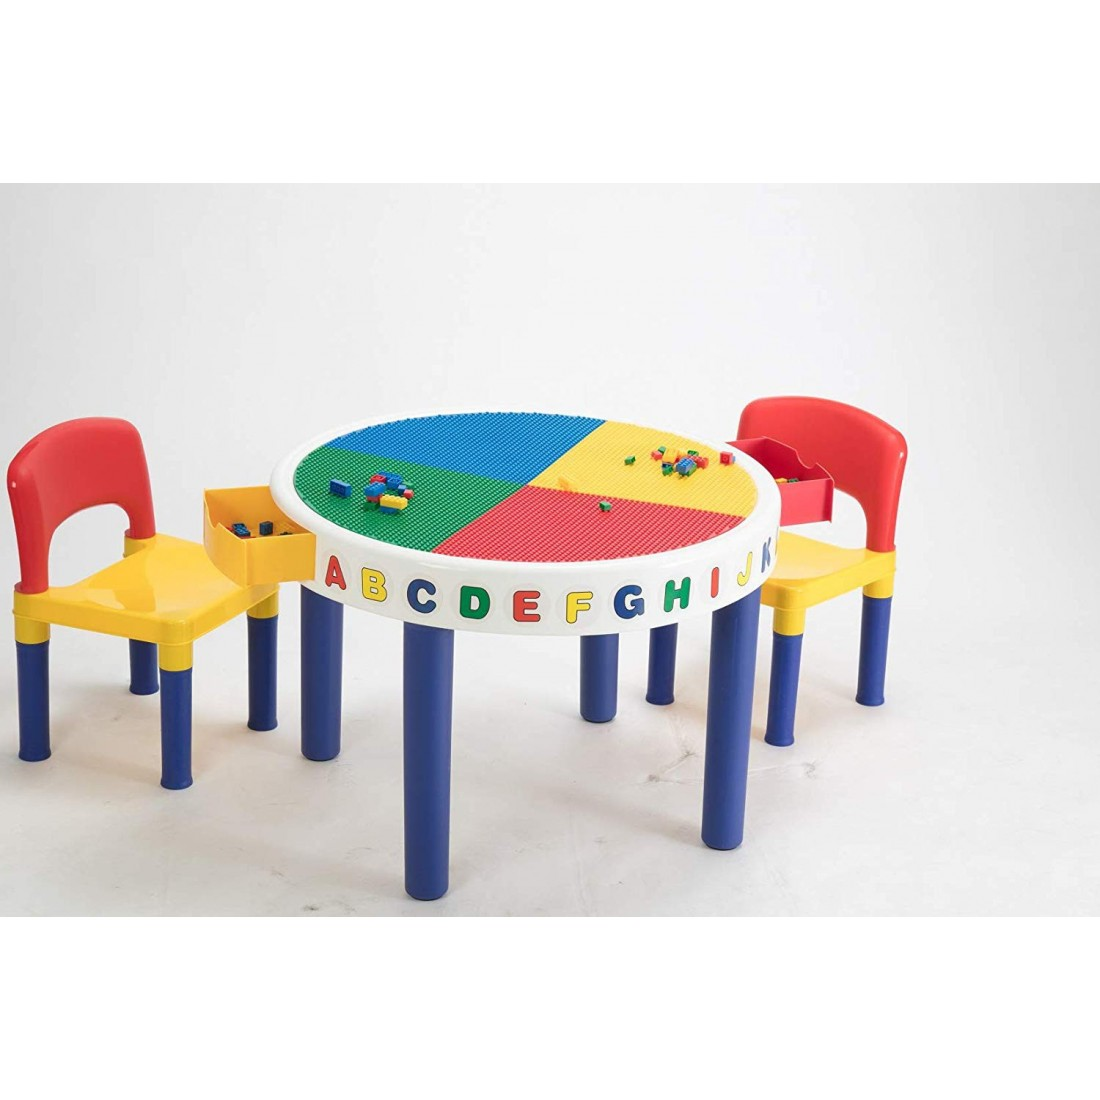 Round Lego Table With Chairs Promotions, Round Lego Table With Chairs